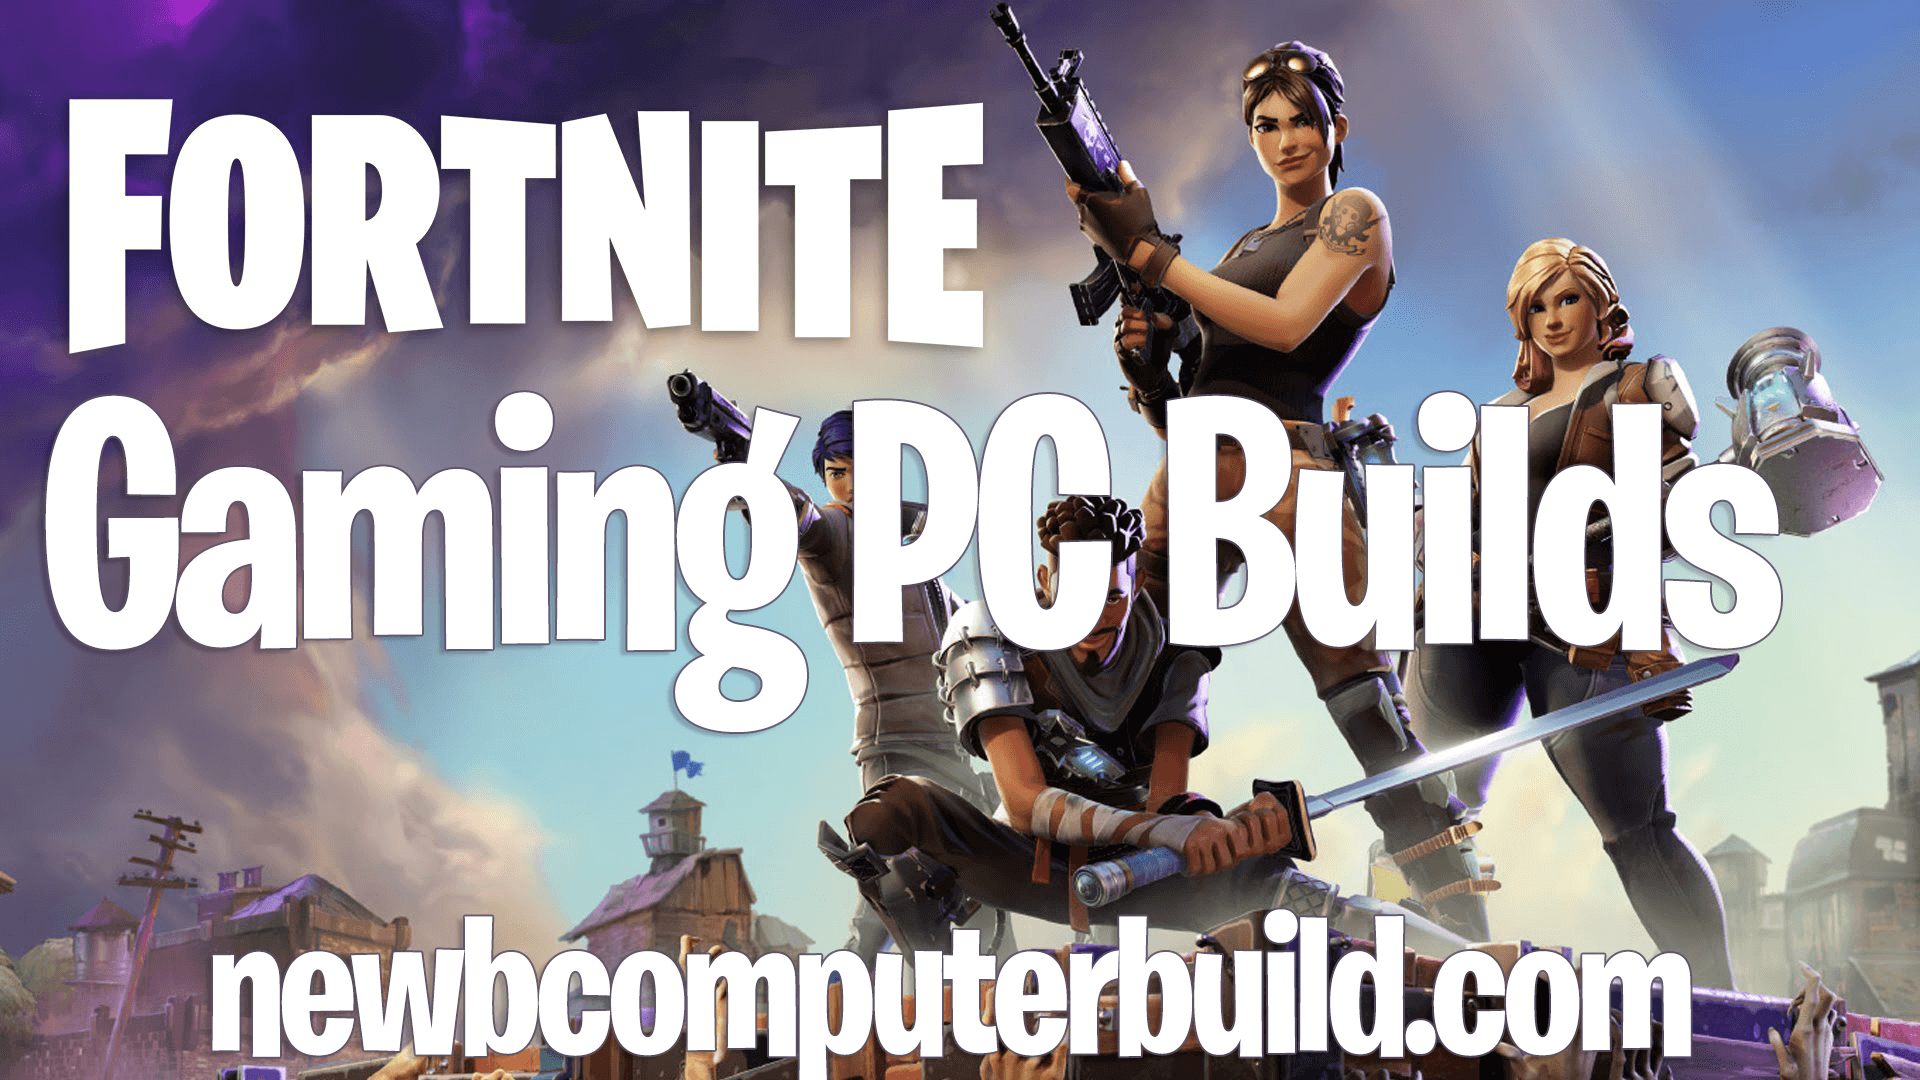 Forinite Gaming PC Builds